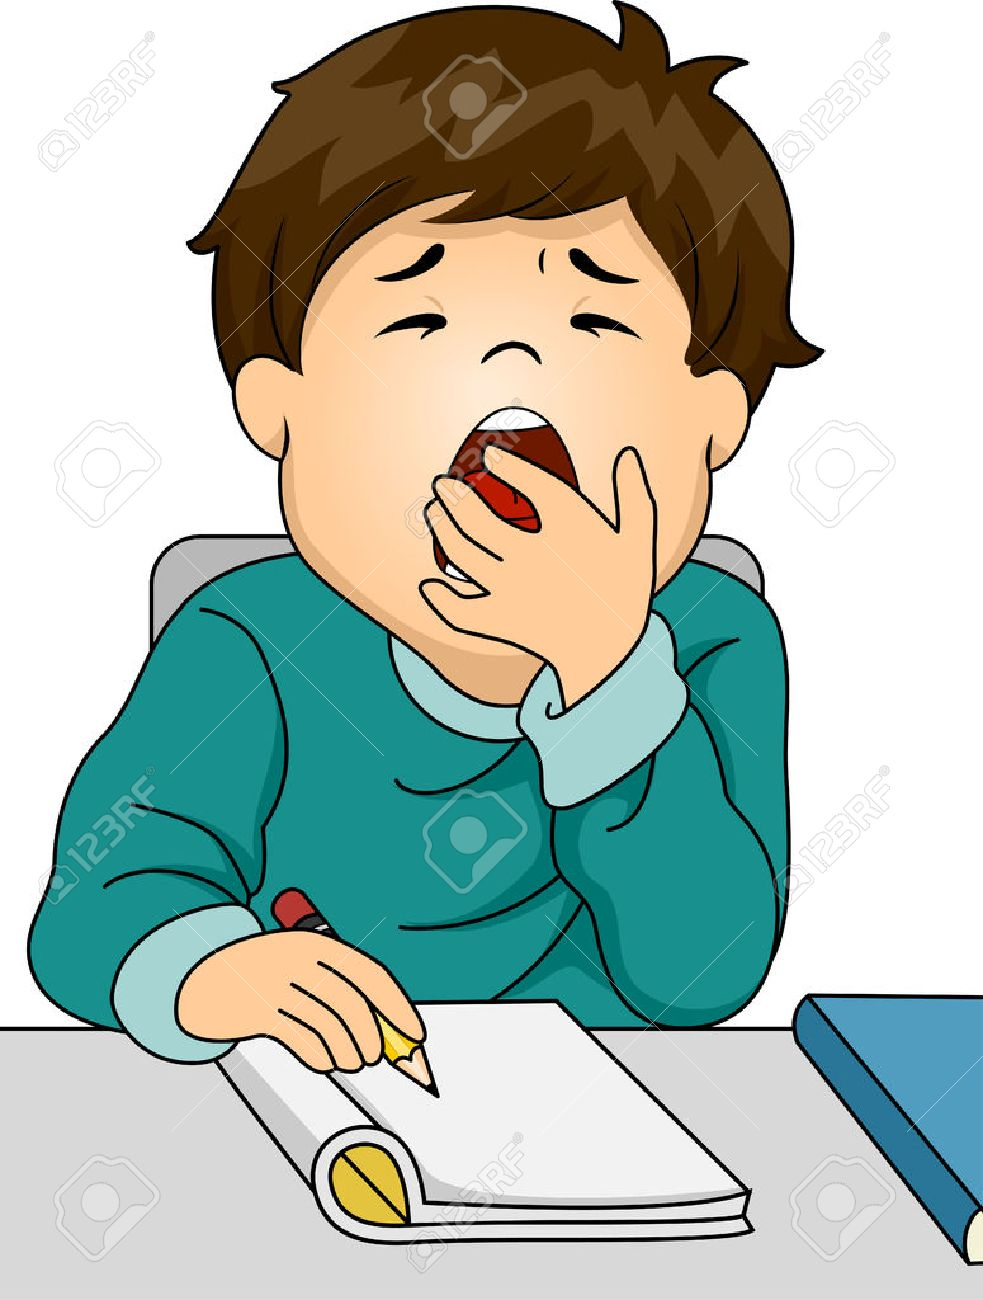 Illustration Featuring A Boy Letting Out A Big Yawn While Studying ... for Clipart Yawn  173lyp